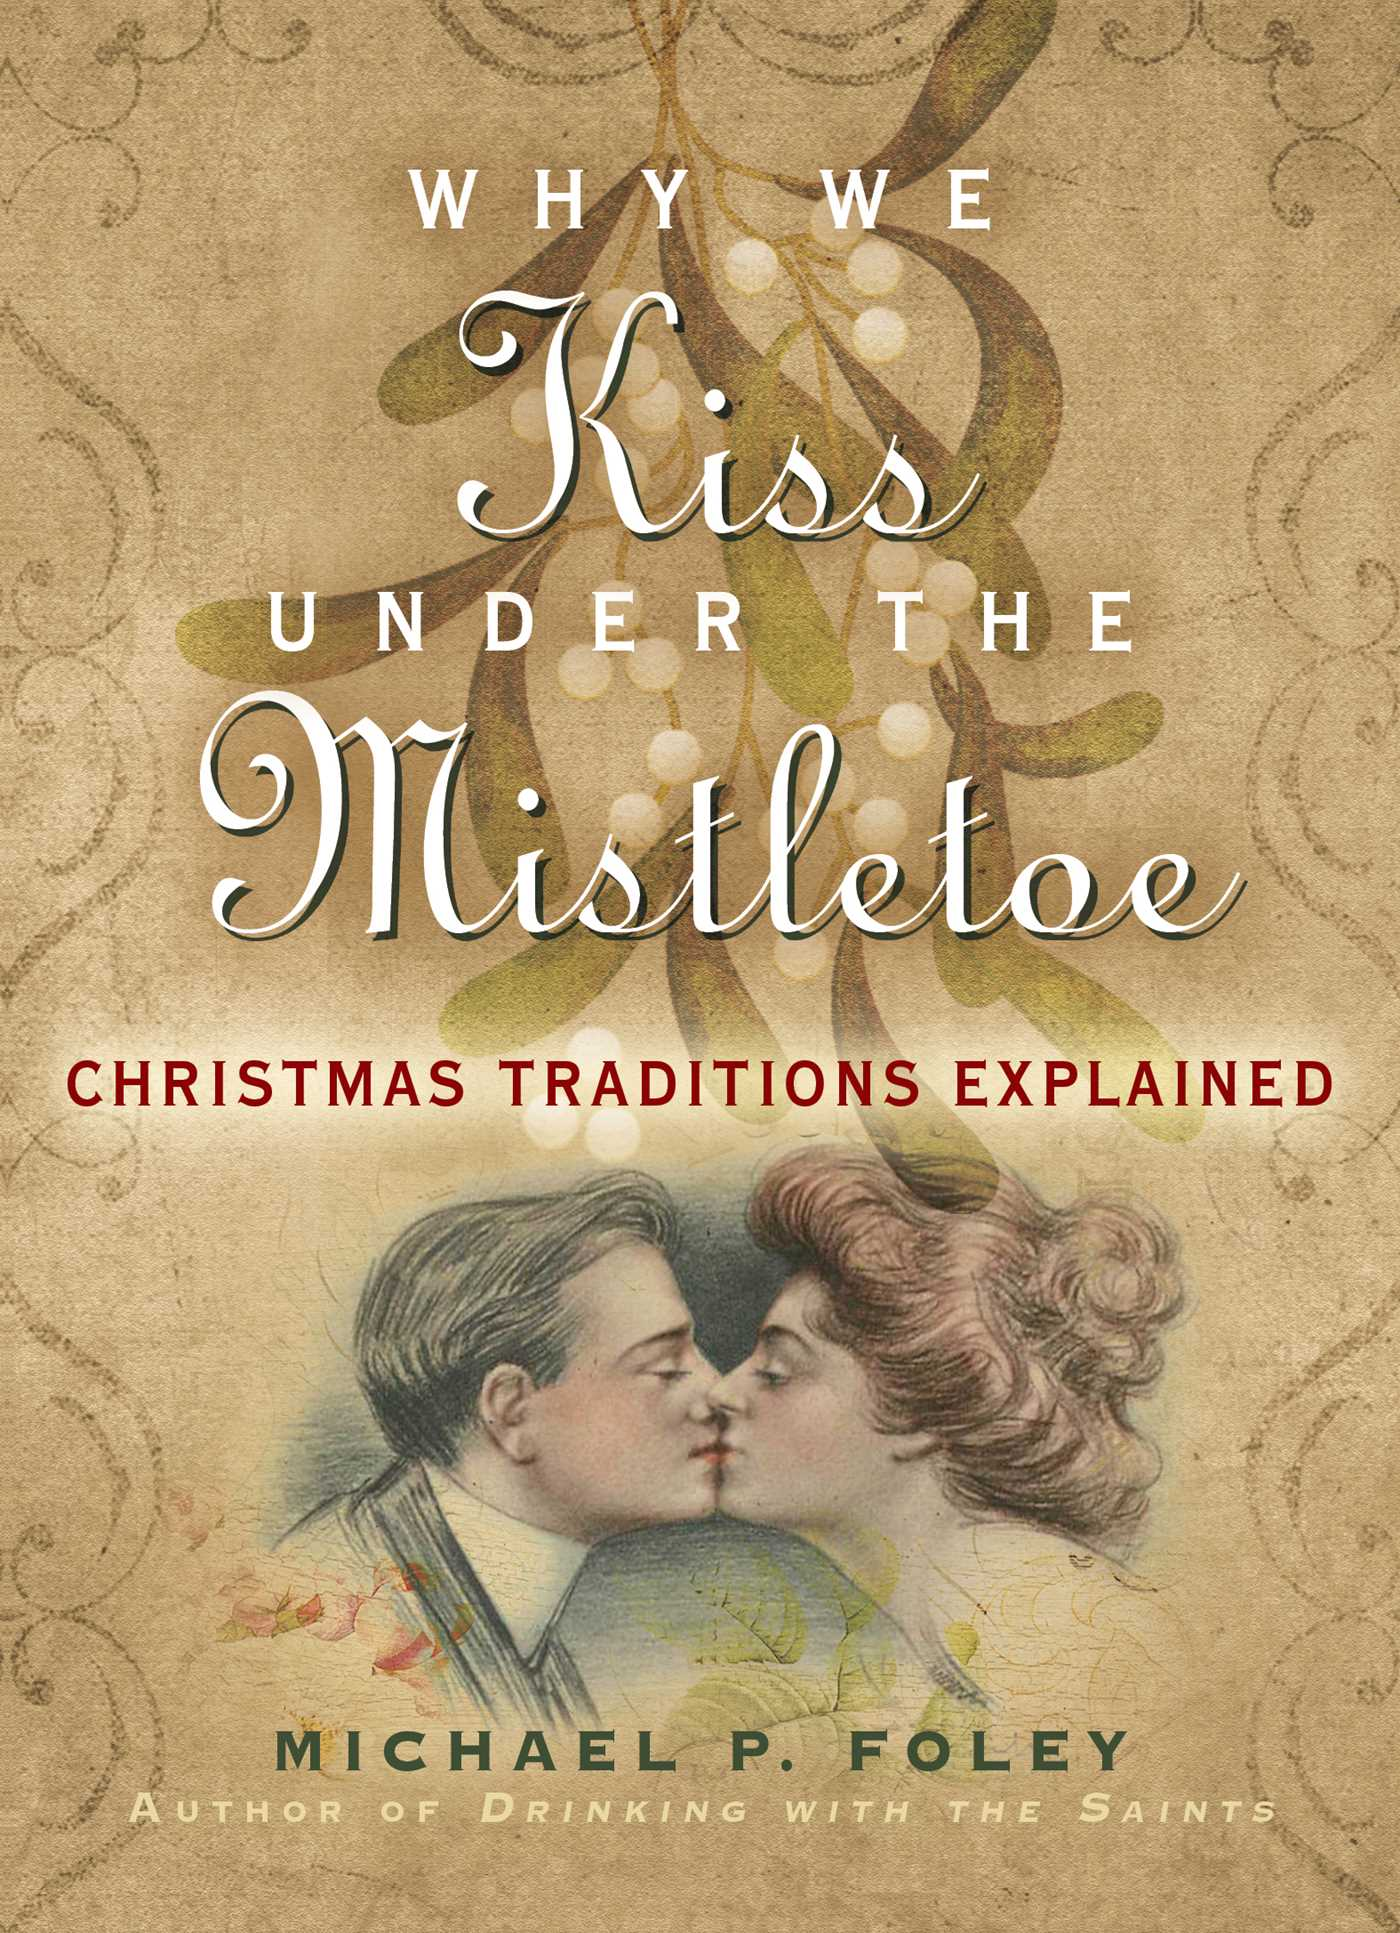 Why We Kiss under the Mistletoe: Christmas Traditions Explained